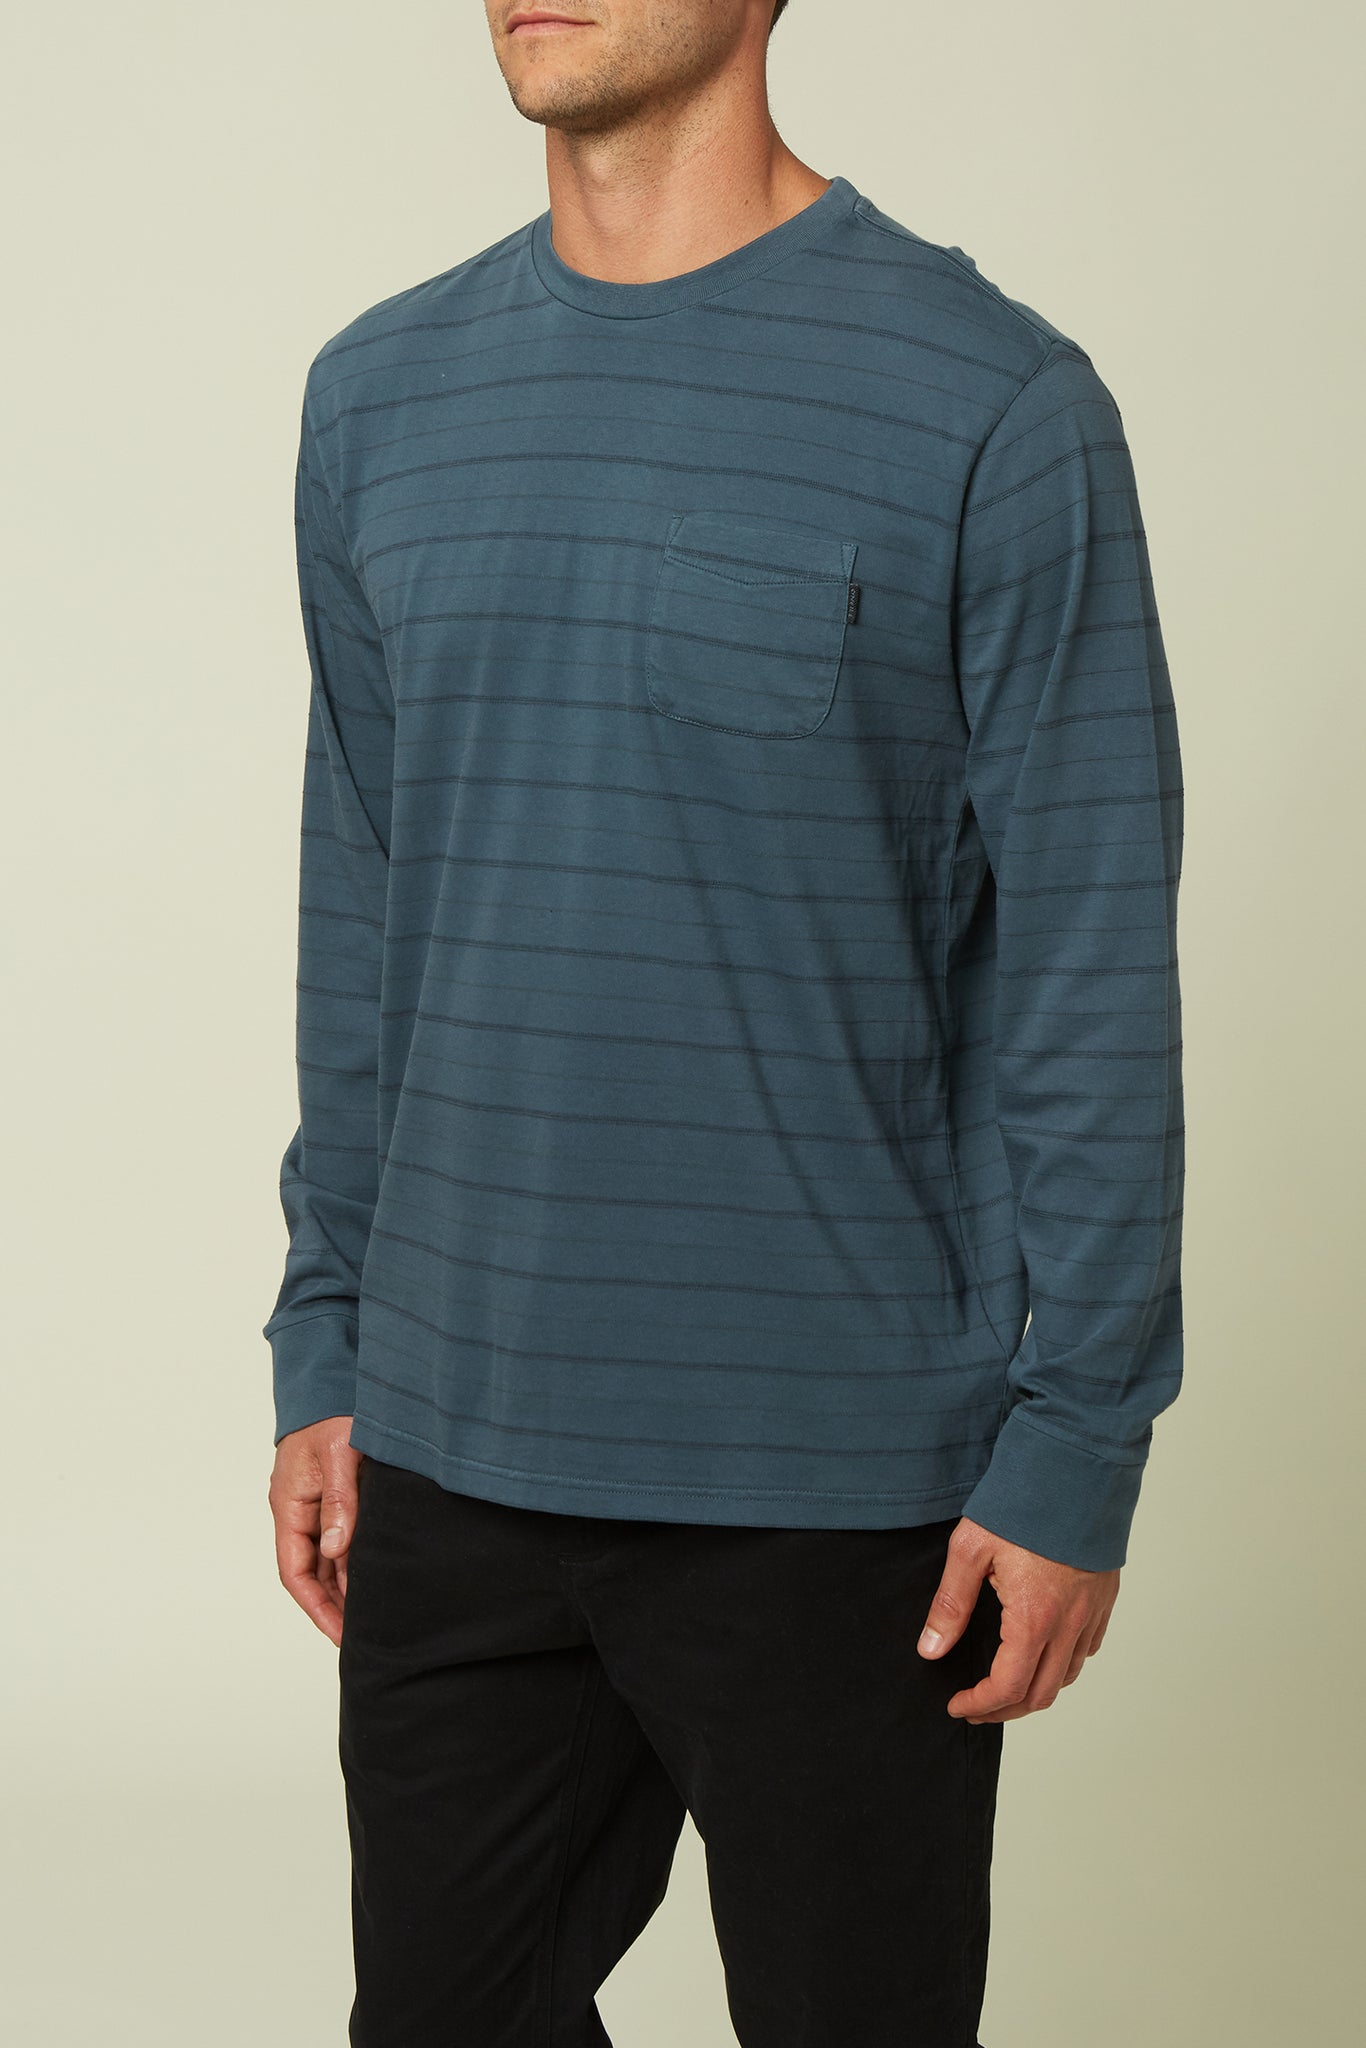 Dinsmore Long Sleeve Pullover | O'Neill Clothing USA